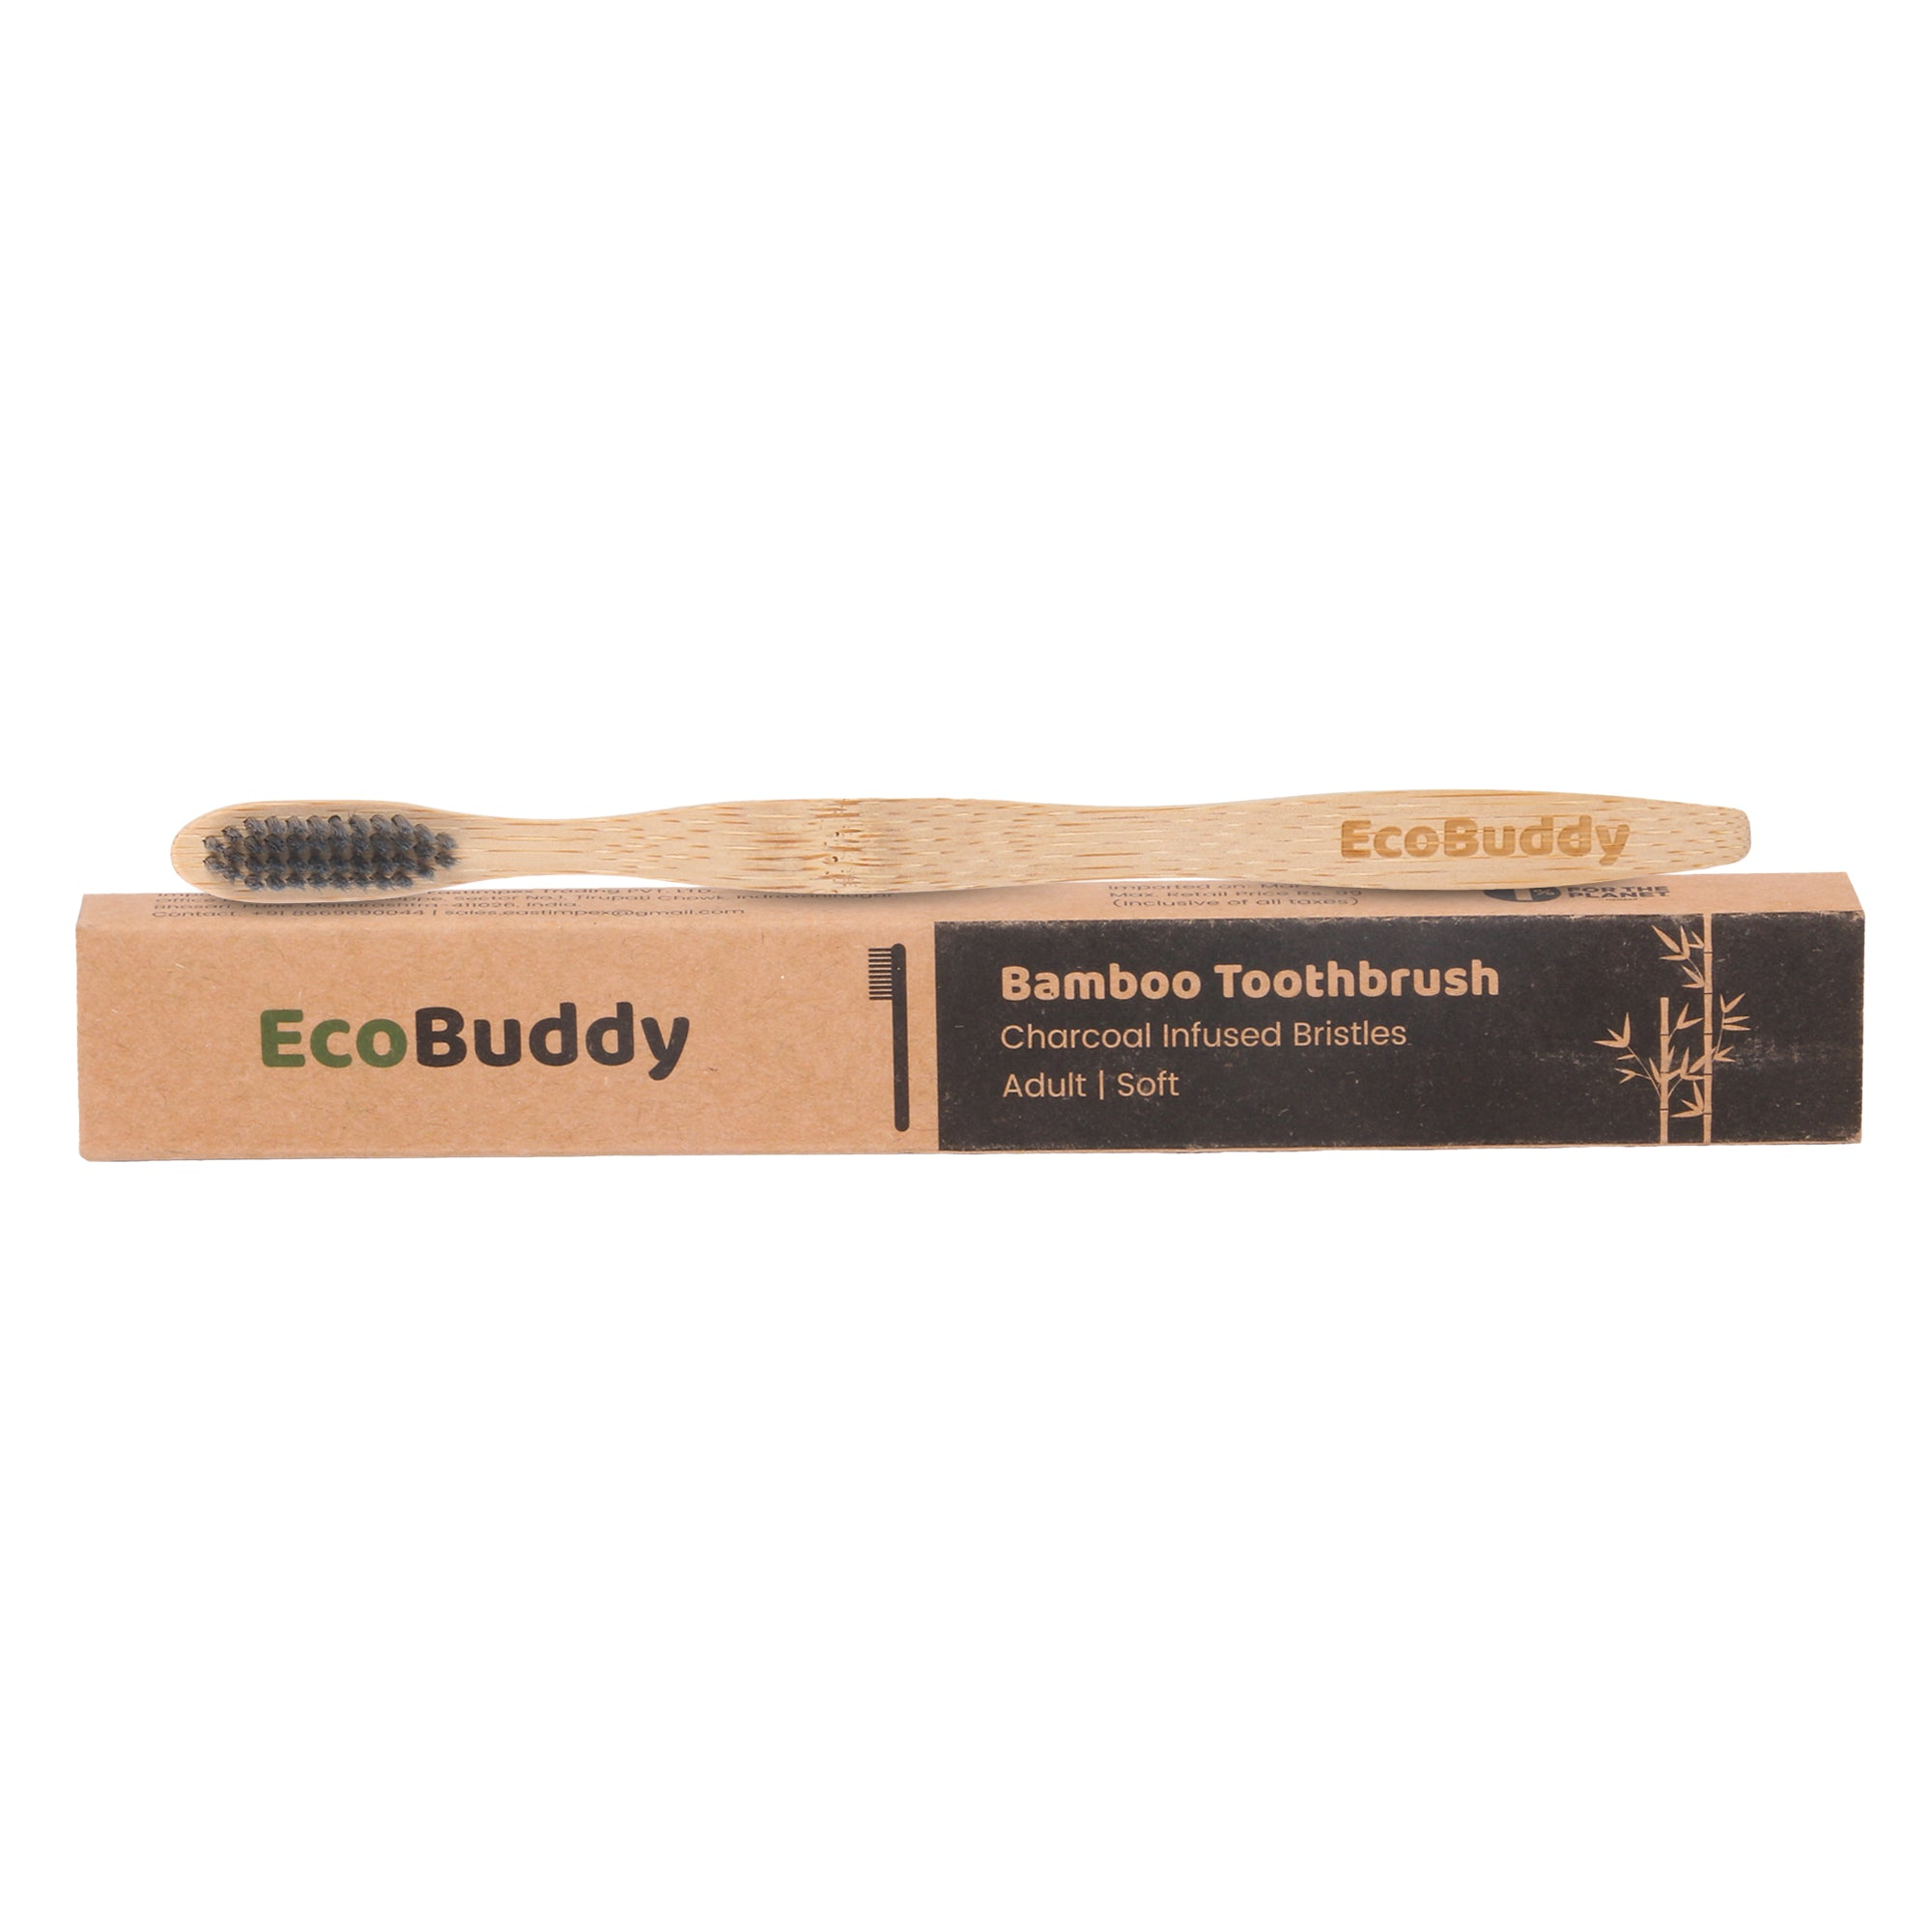 EcoBuddy Bamboo toothbursh (Family Pack of 4)